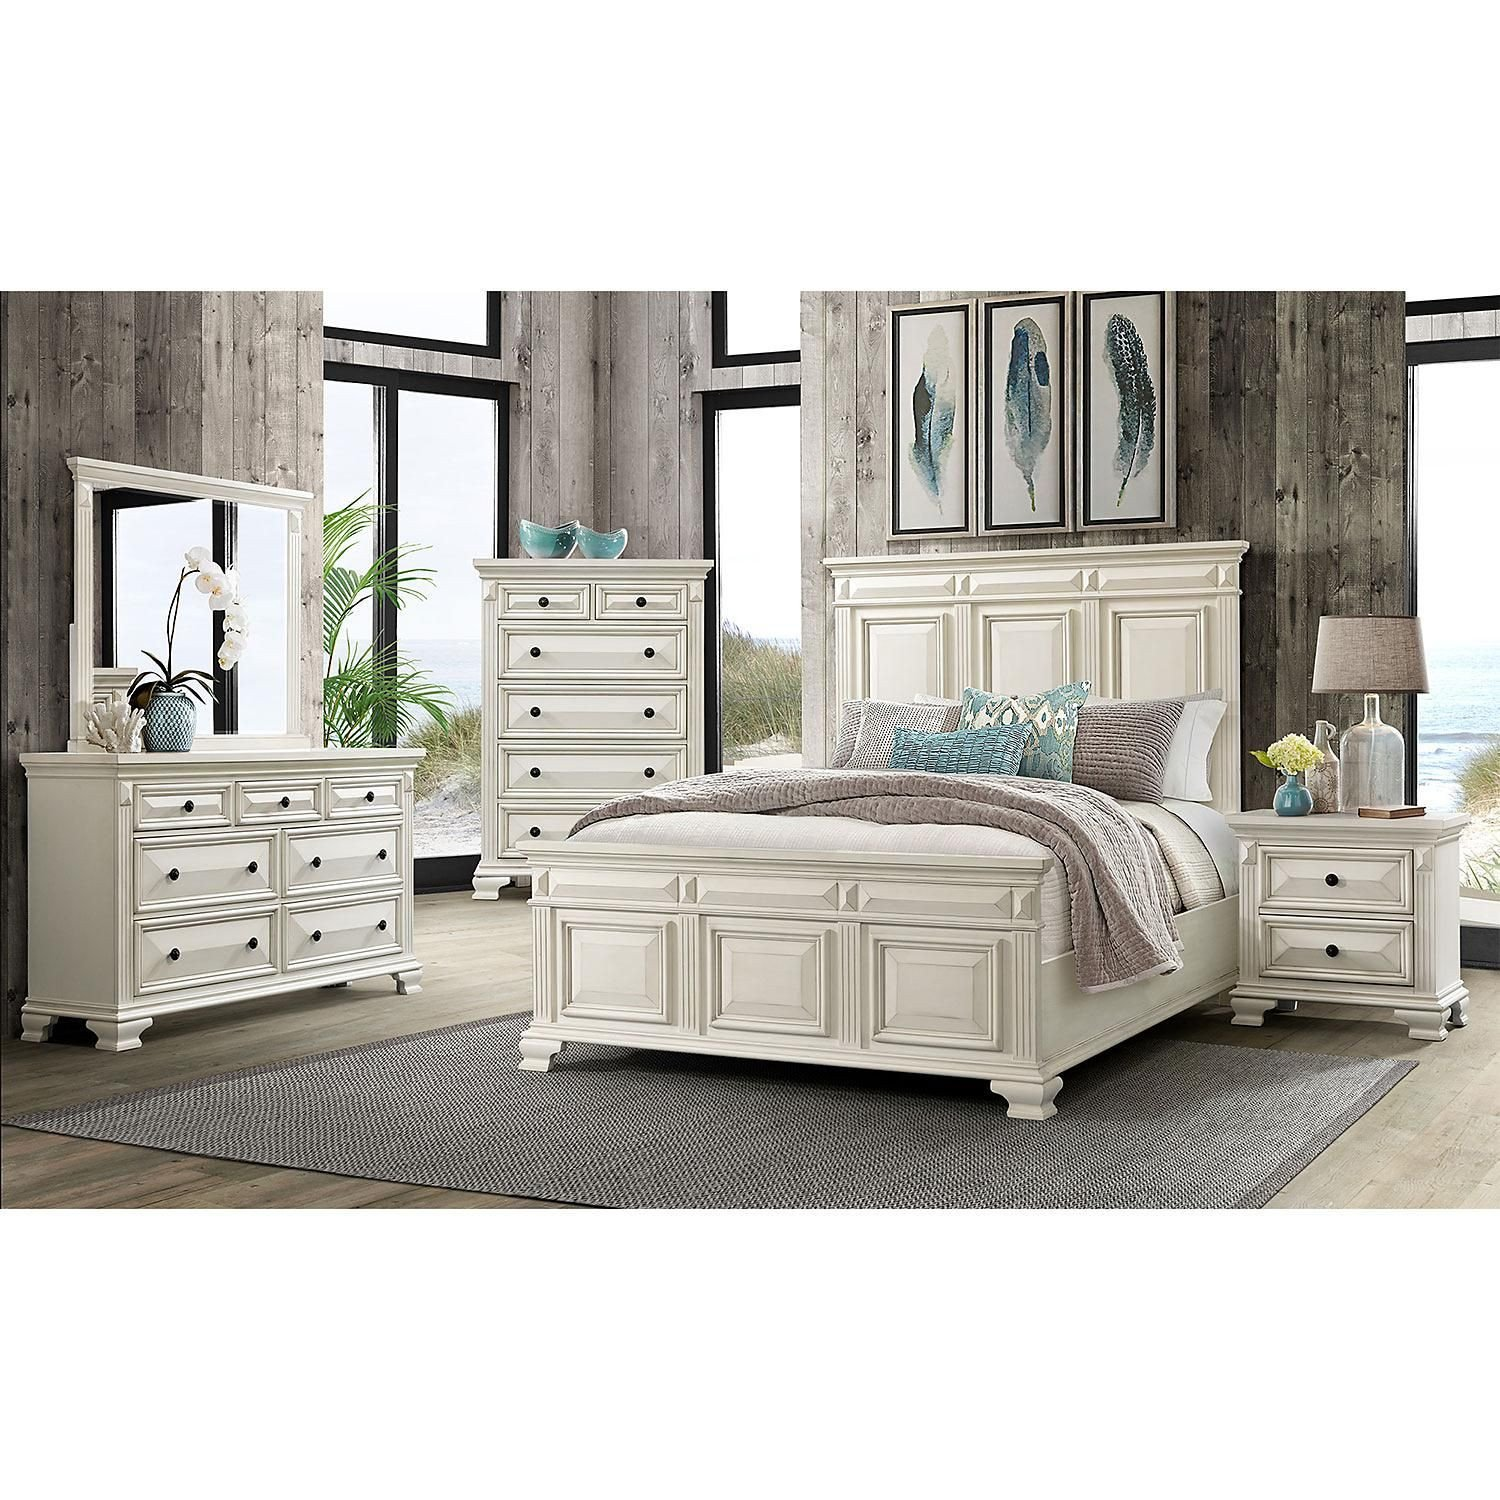 Mirrored Headboard Bedroom Set Fresh $1599 00 society Den Trent Panel 6 Piece King Bedroom Set